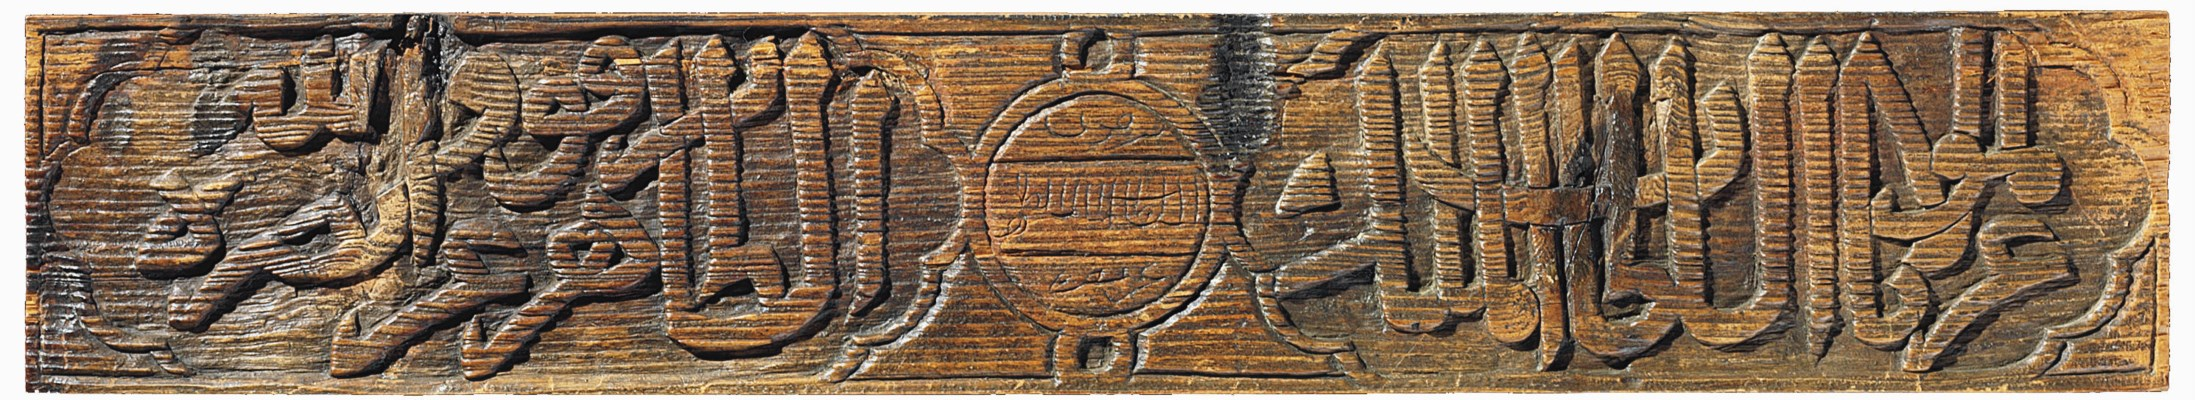 A MAMLUK CARVED WOODEN PANEL